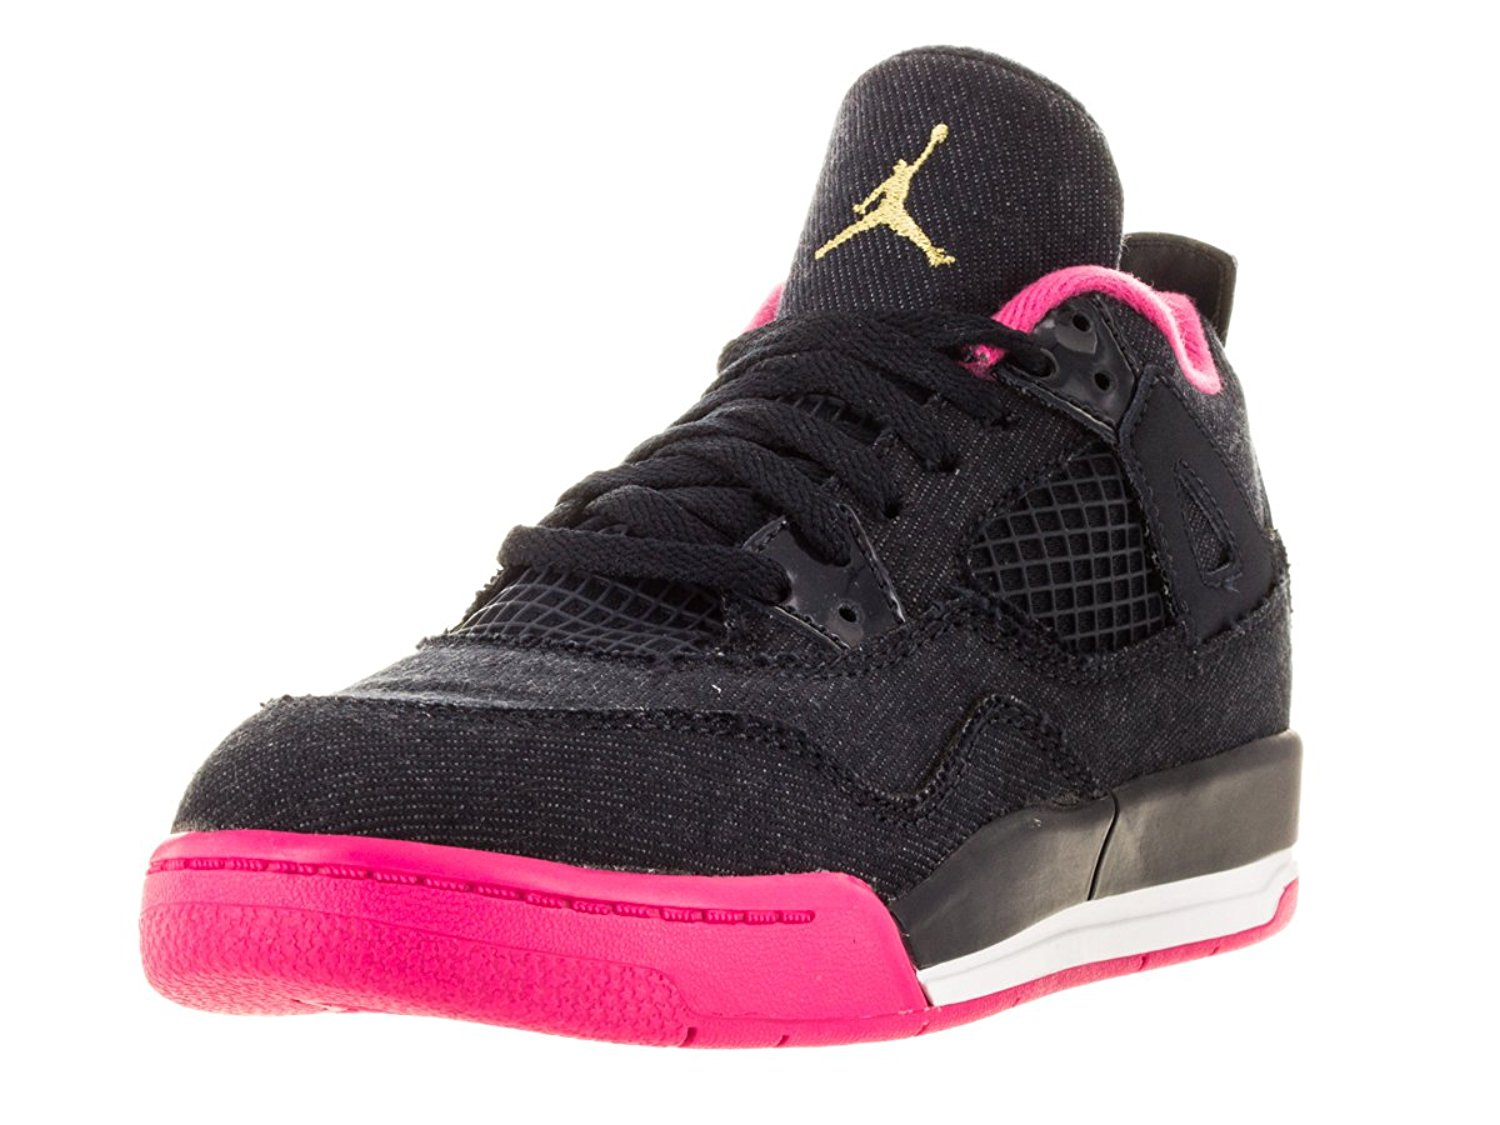 kids jordan 4 retro basketball shoe image